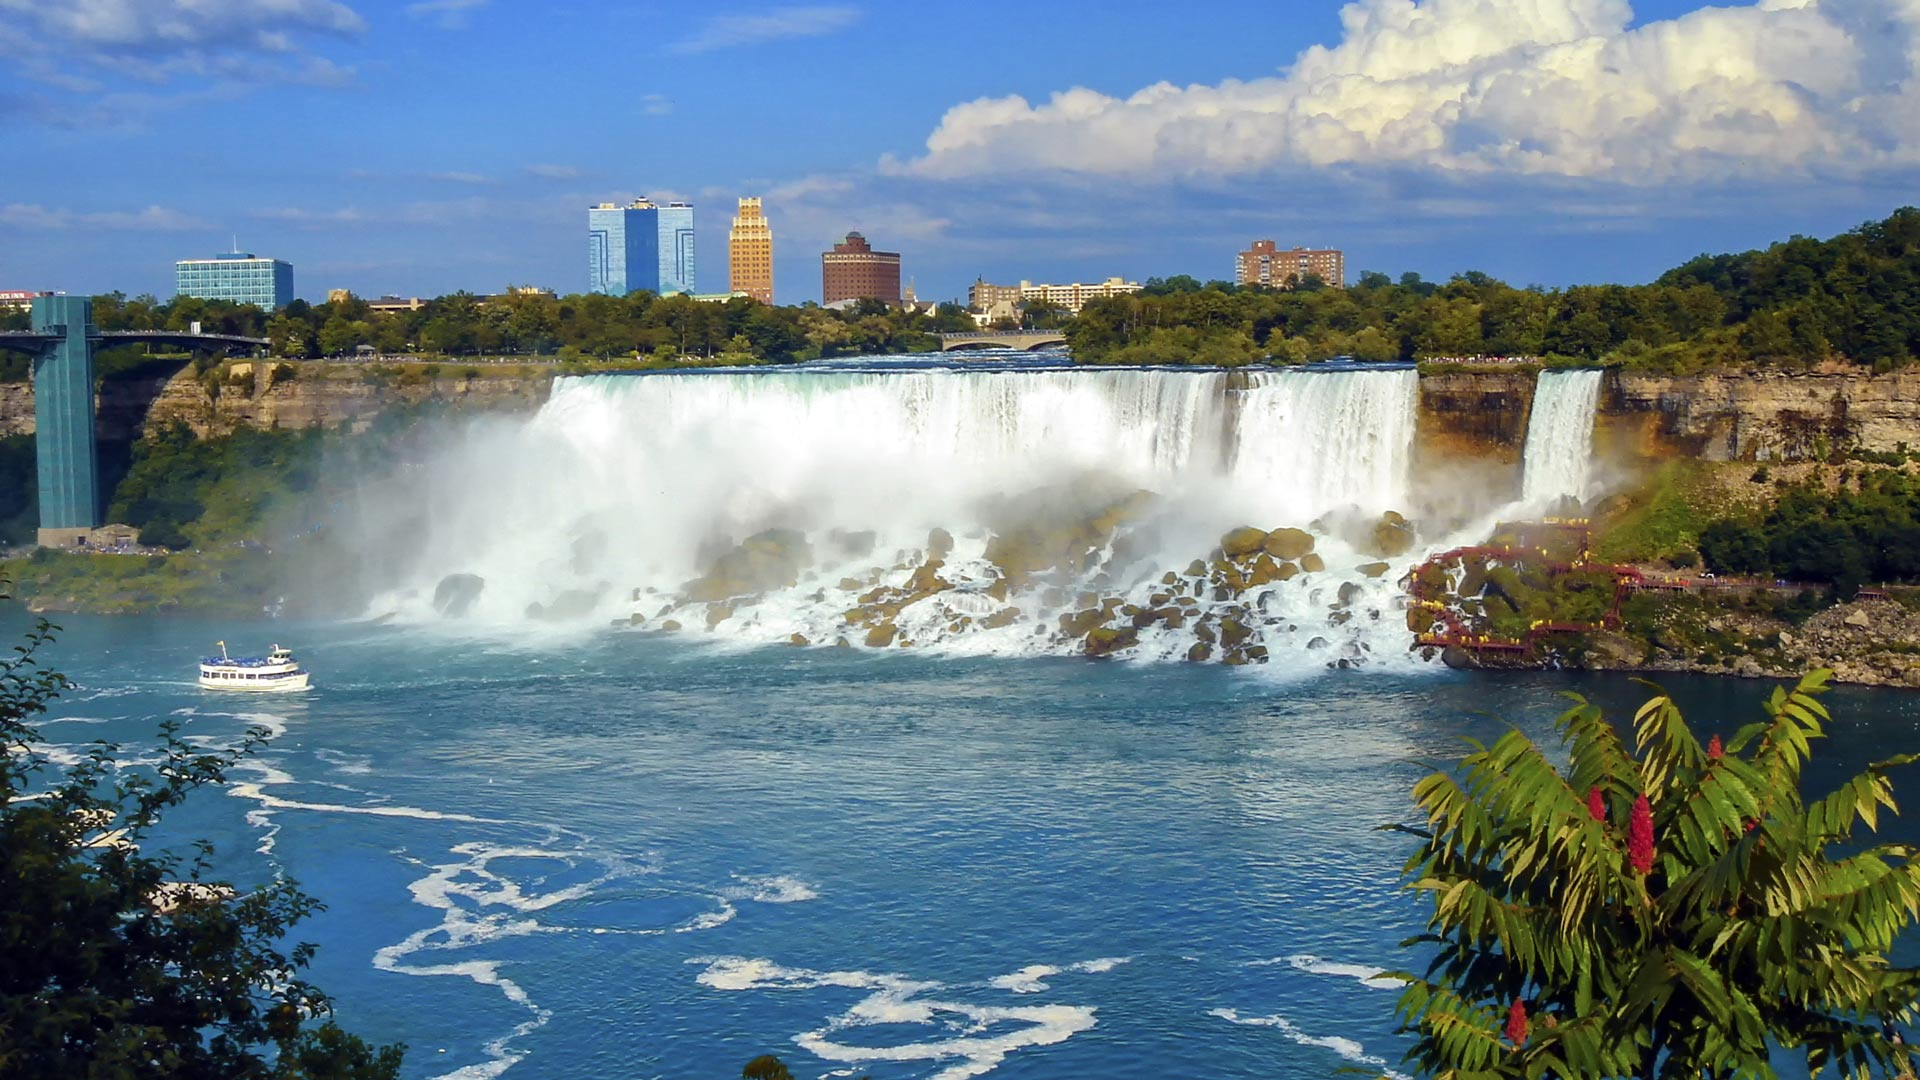 Niagara falls from Canada with boat, buildings and vegetation, Canada and USA